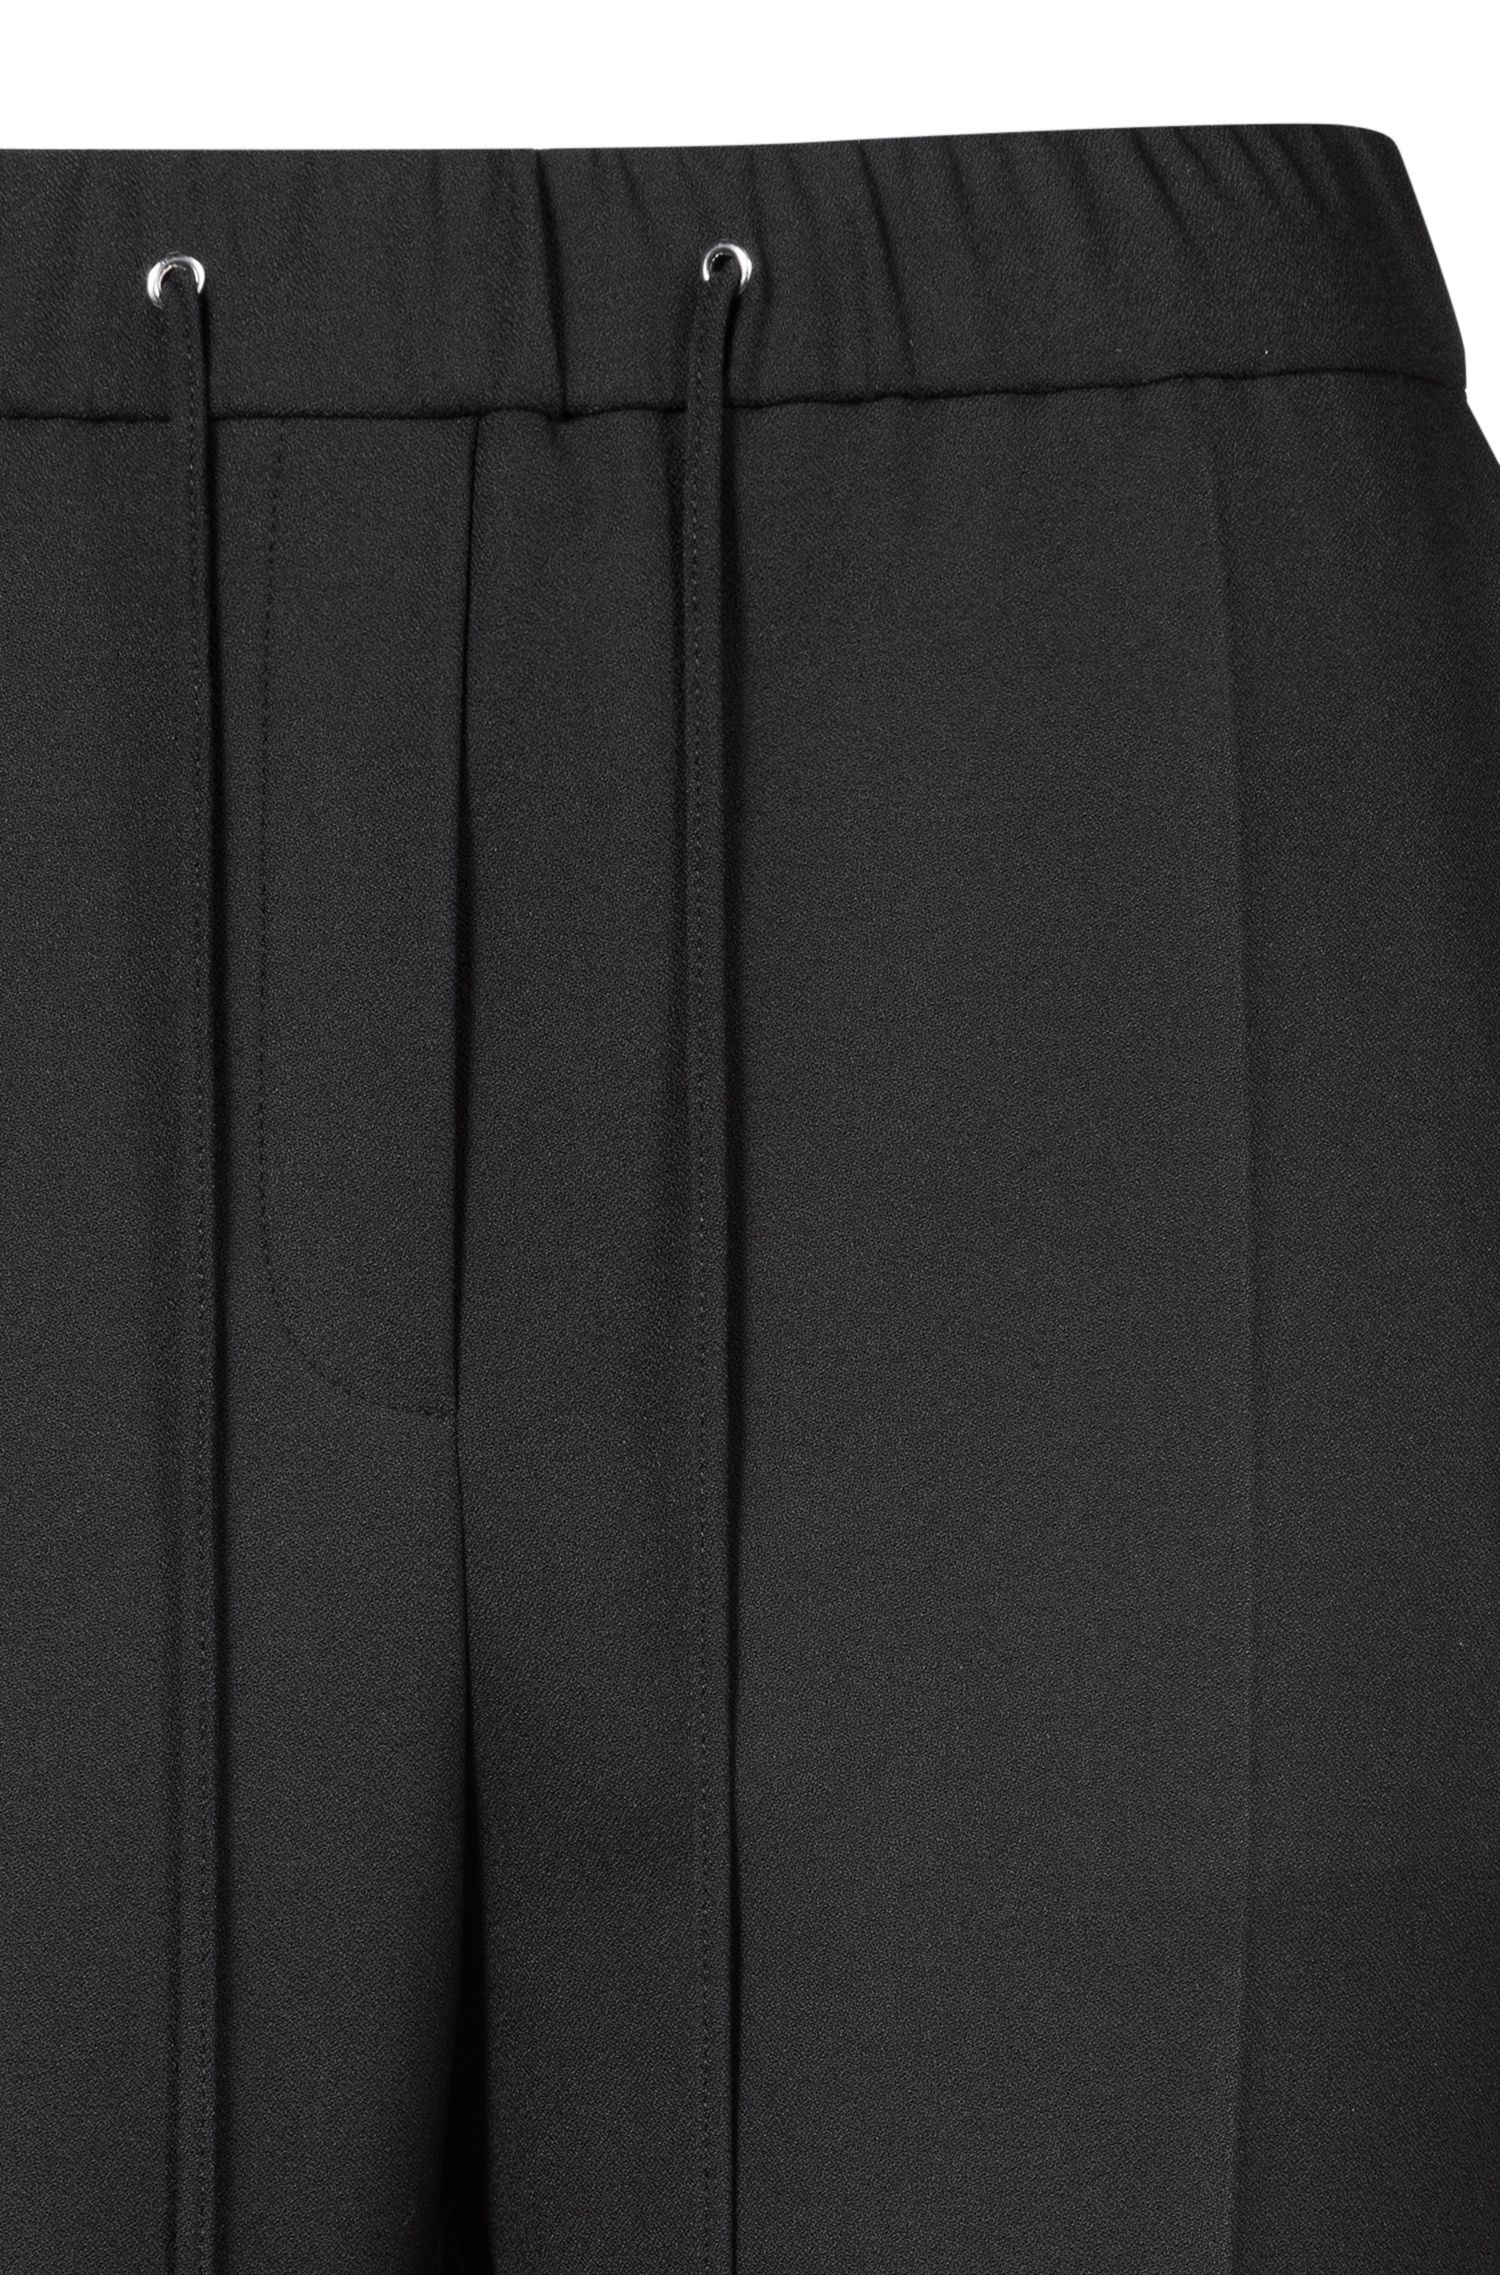 Regular-fit trousers in stretch crepe with tape detail, Black